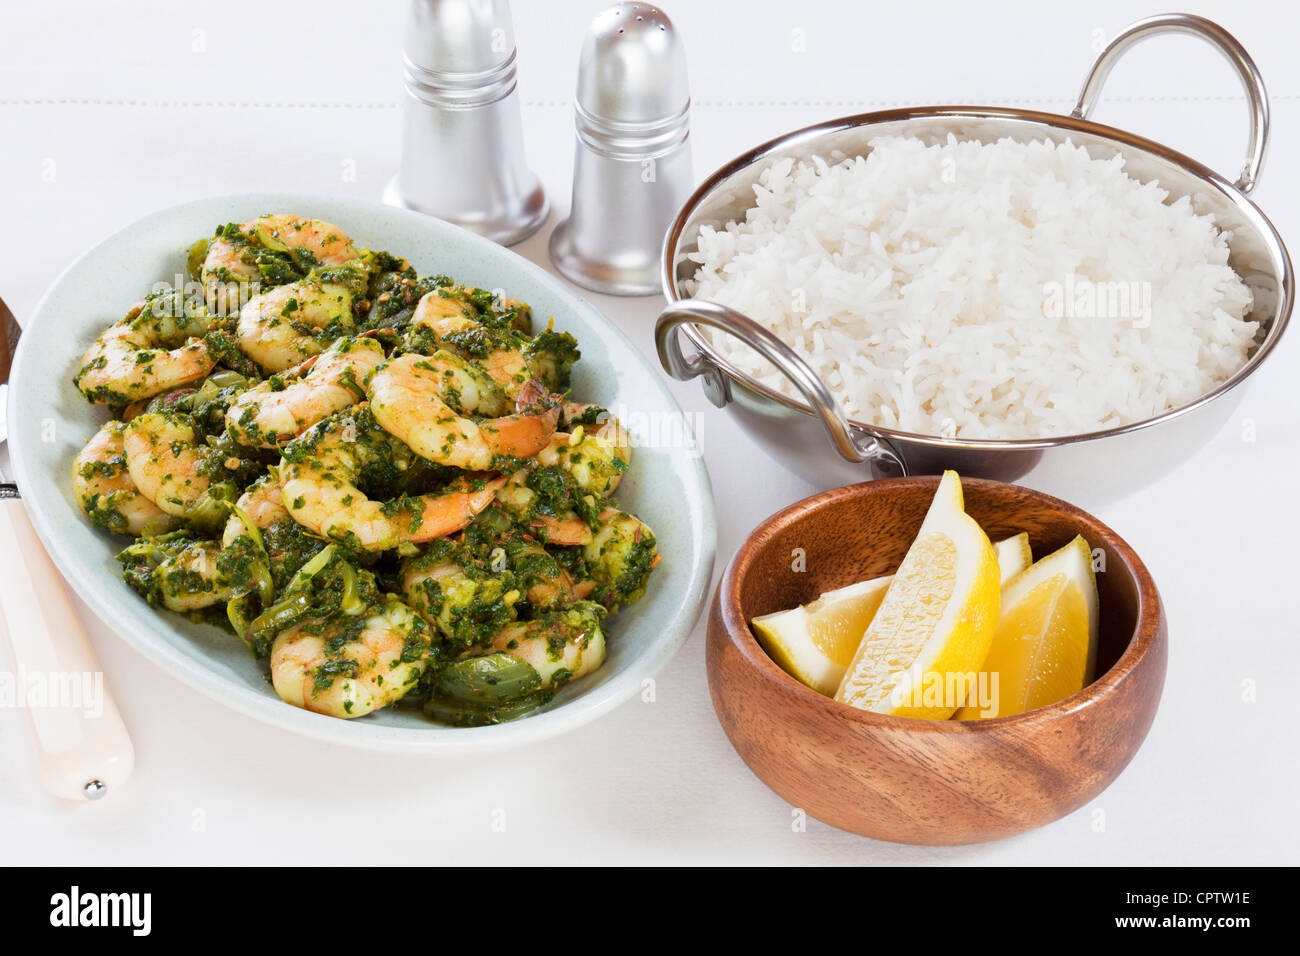 Indian curry prawn saag or sag is made with pureed spinach, here served with basmati rice and lemon. Stock Photo